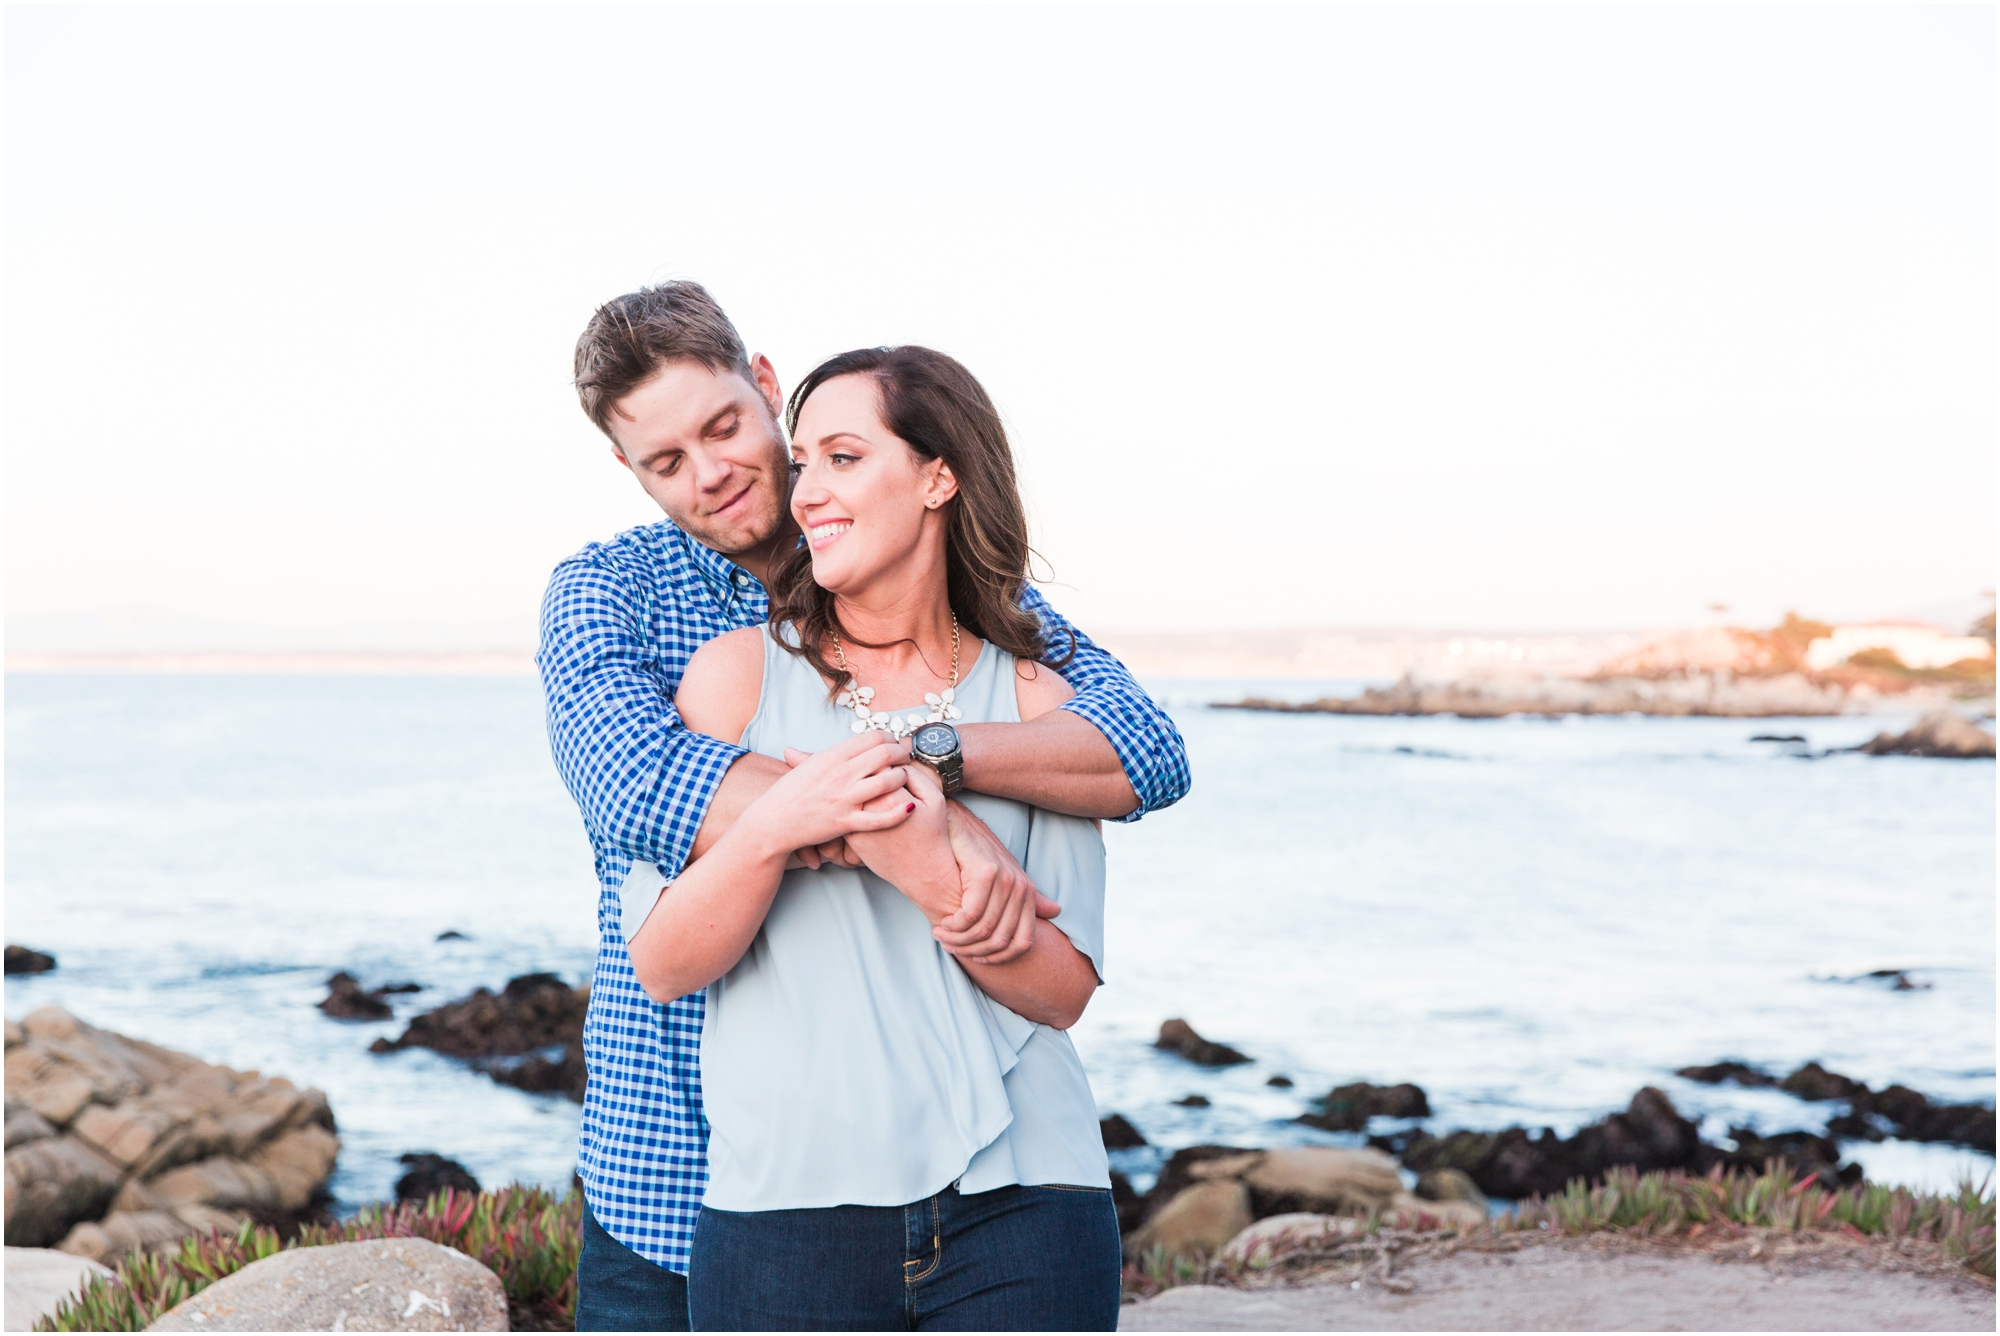 Berwick Park Monterey engagement pictures by Briana Calderon Photography_2409.jpg